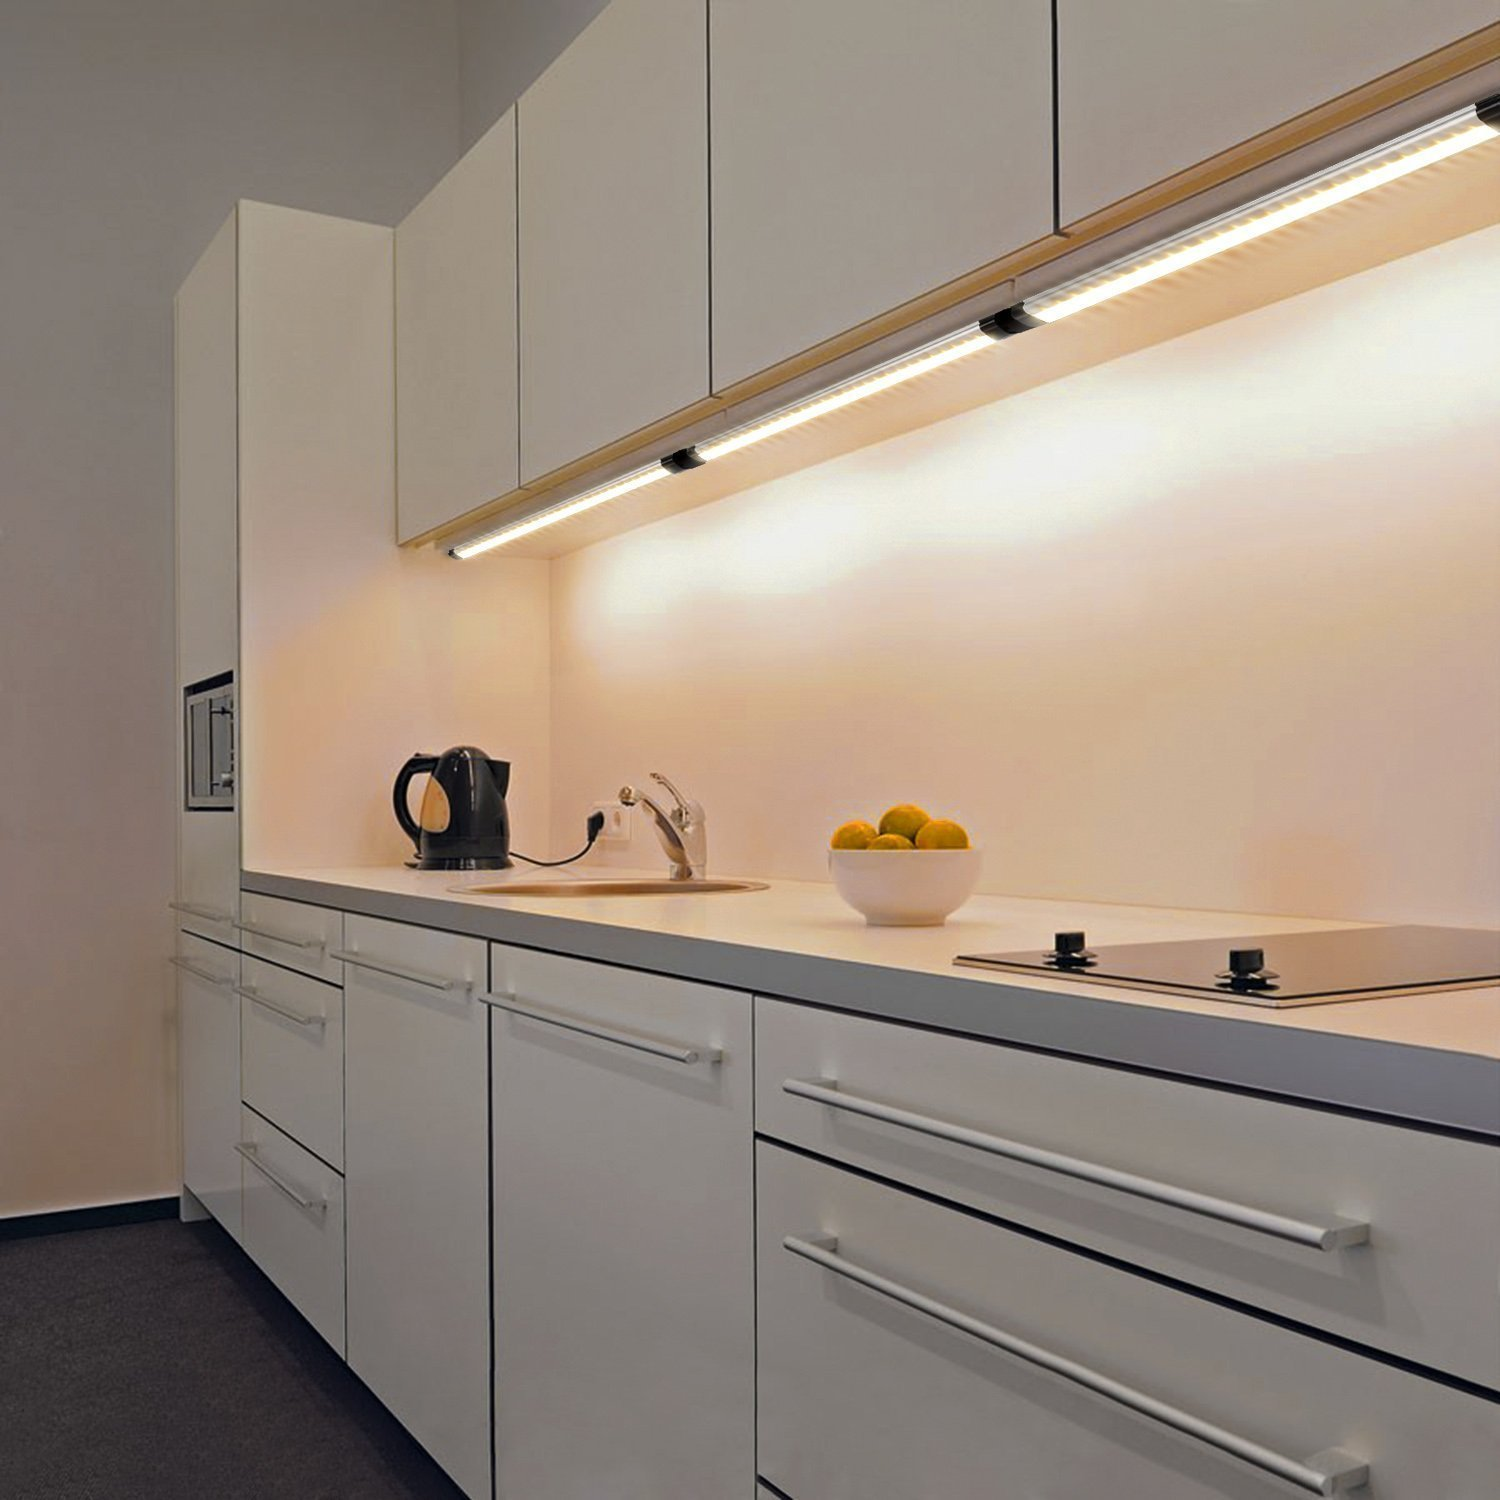 Dimmable Under Cabinet Lightning